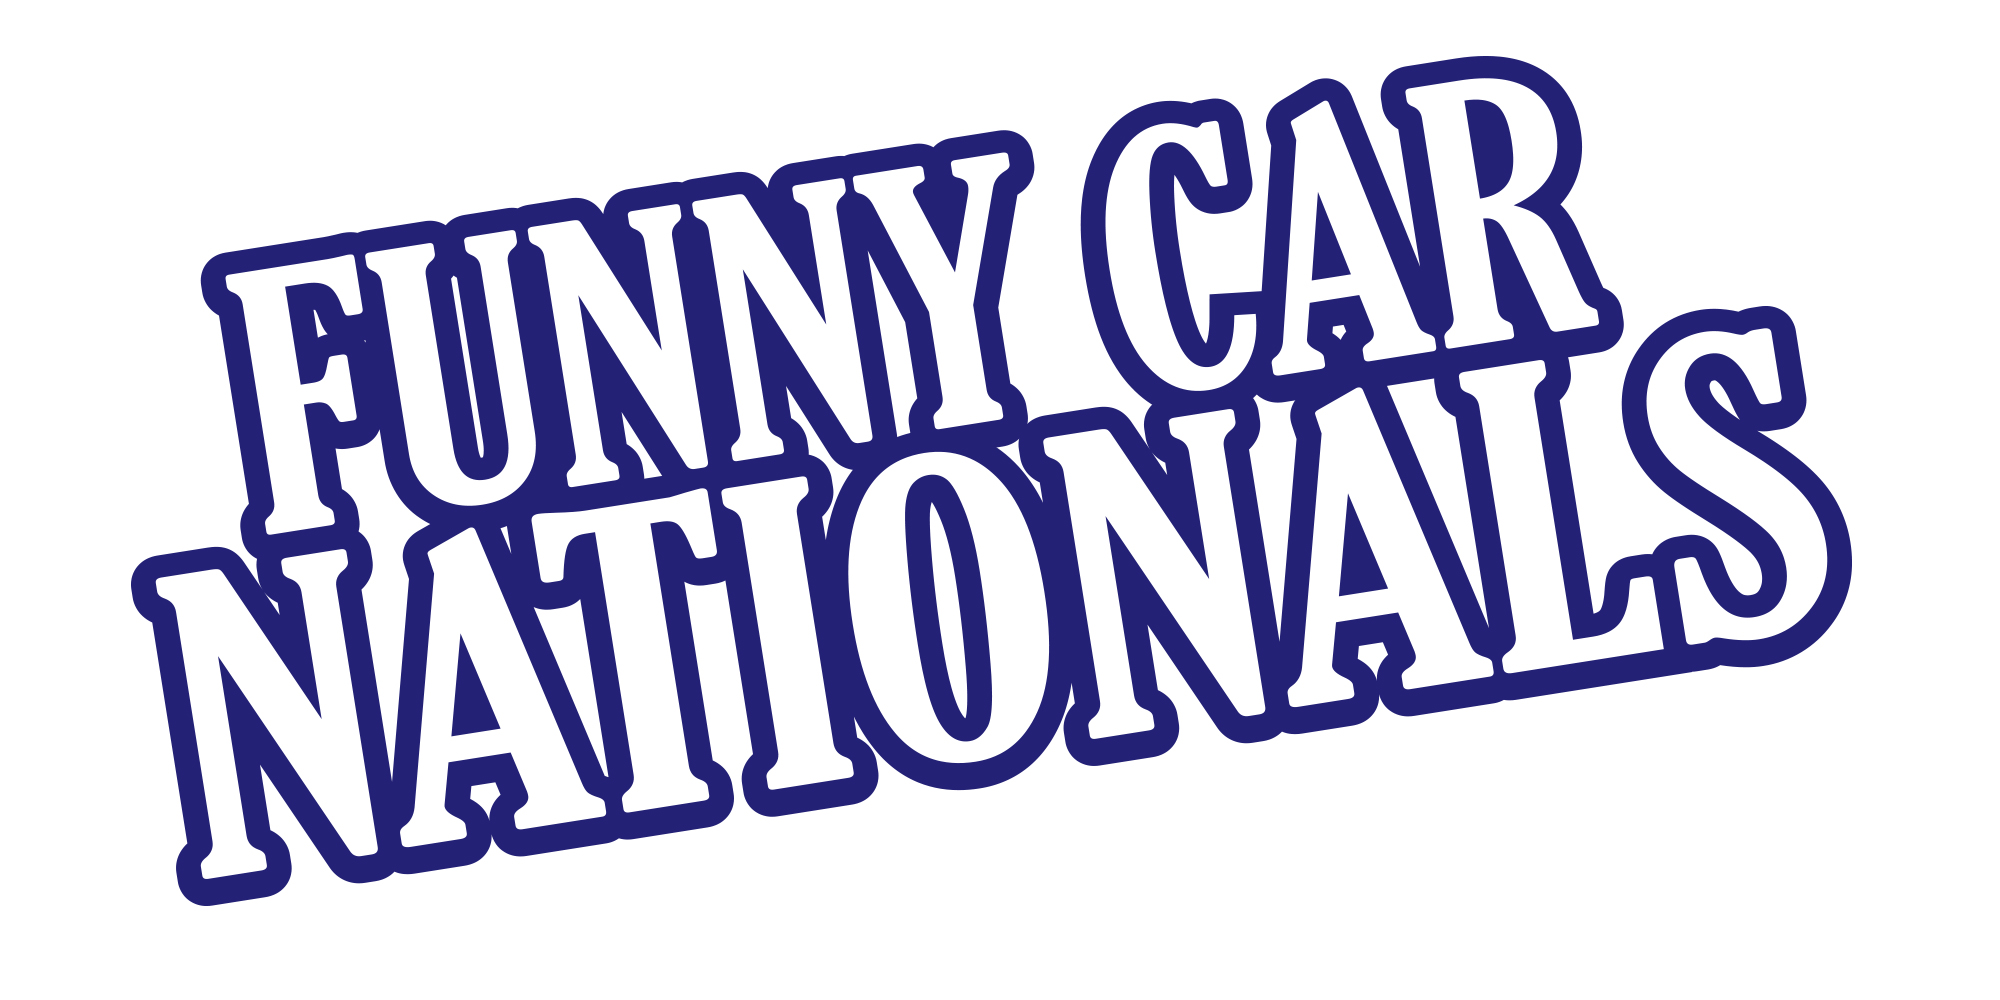 15th Annual Funny Car Nationals – US131 Motorsports Park